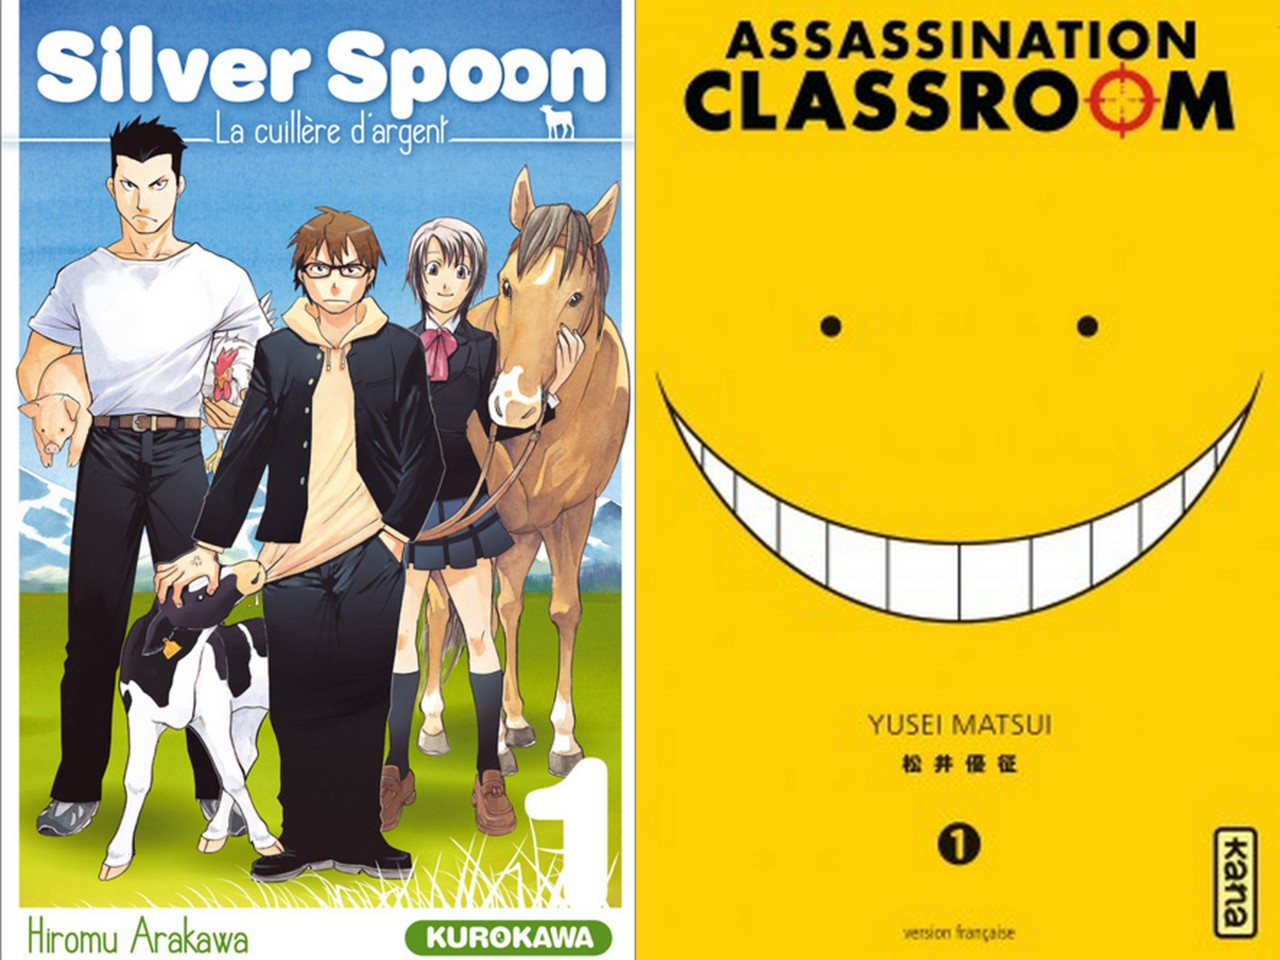 Silver Spoon Assassination Classroom